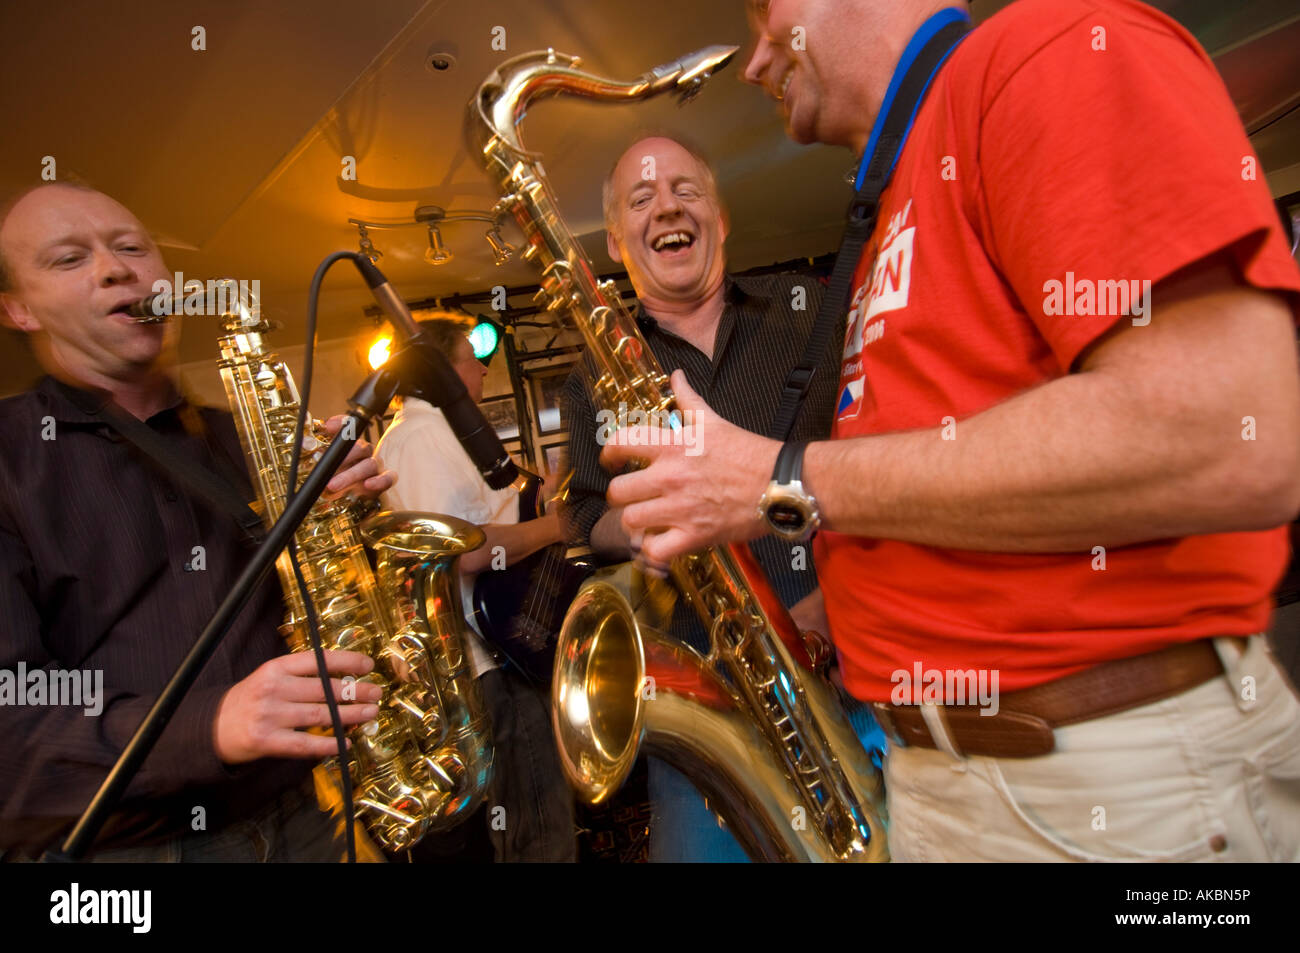 Three happy smiling laughing male Jazz musicians playing music in a nightclub - Stock Image